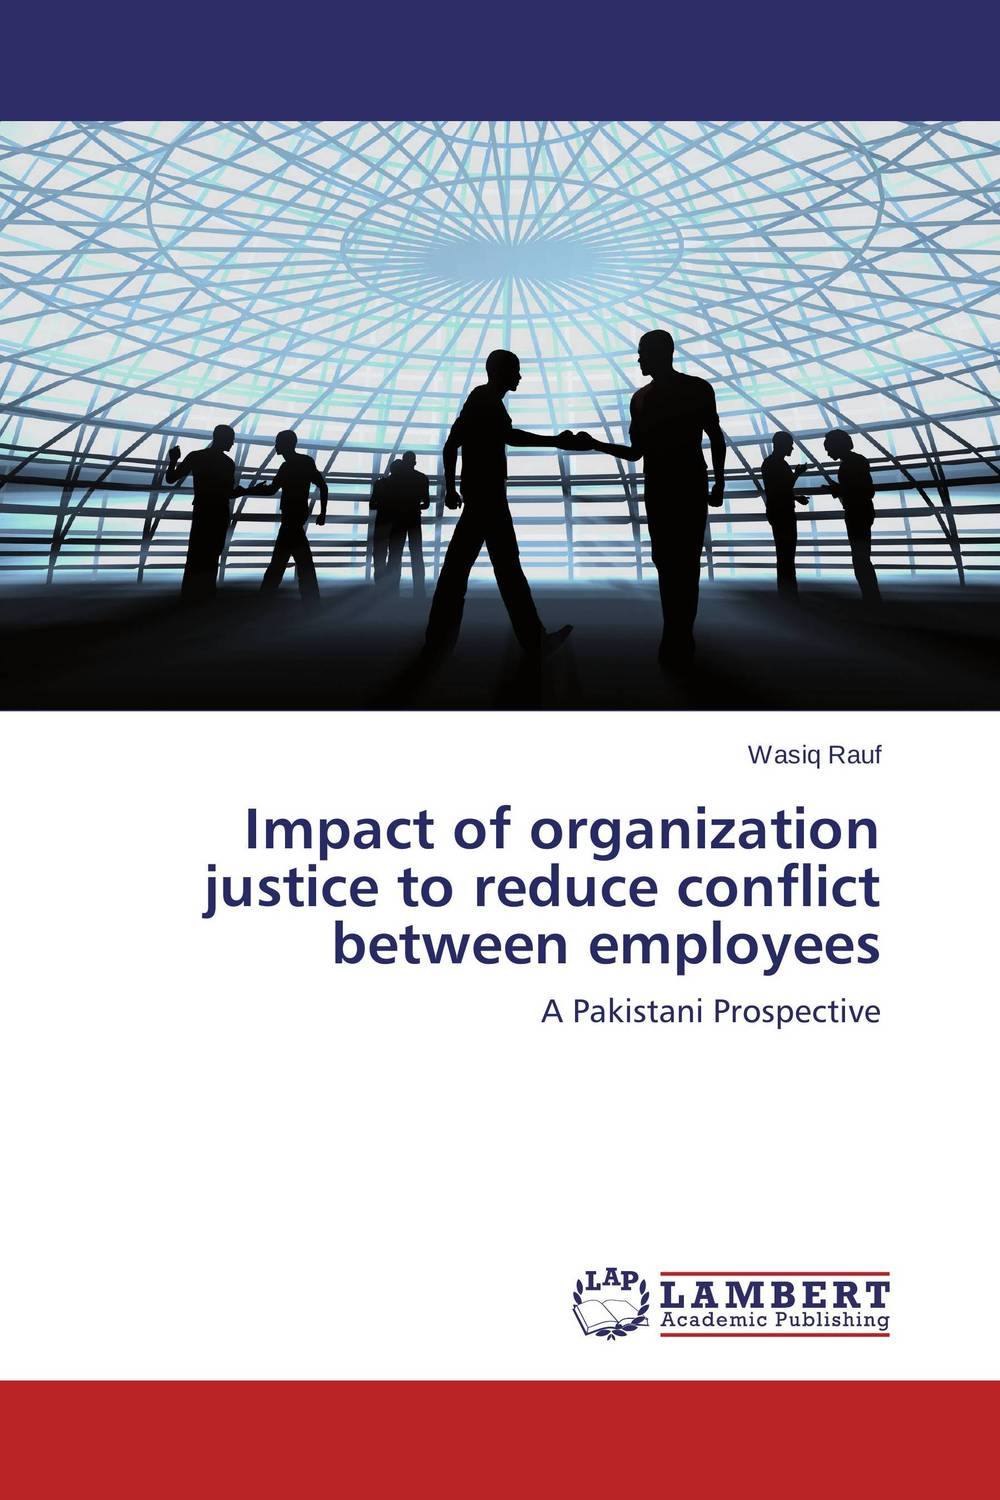 Impact of organization justice to reduce conflict between employees